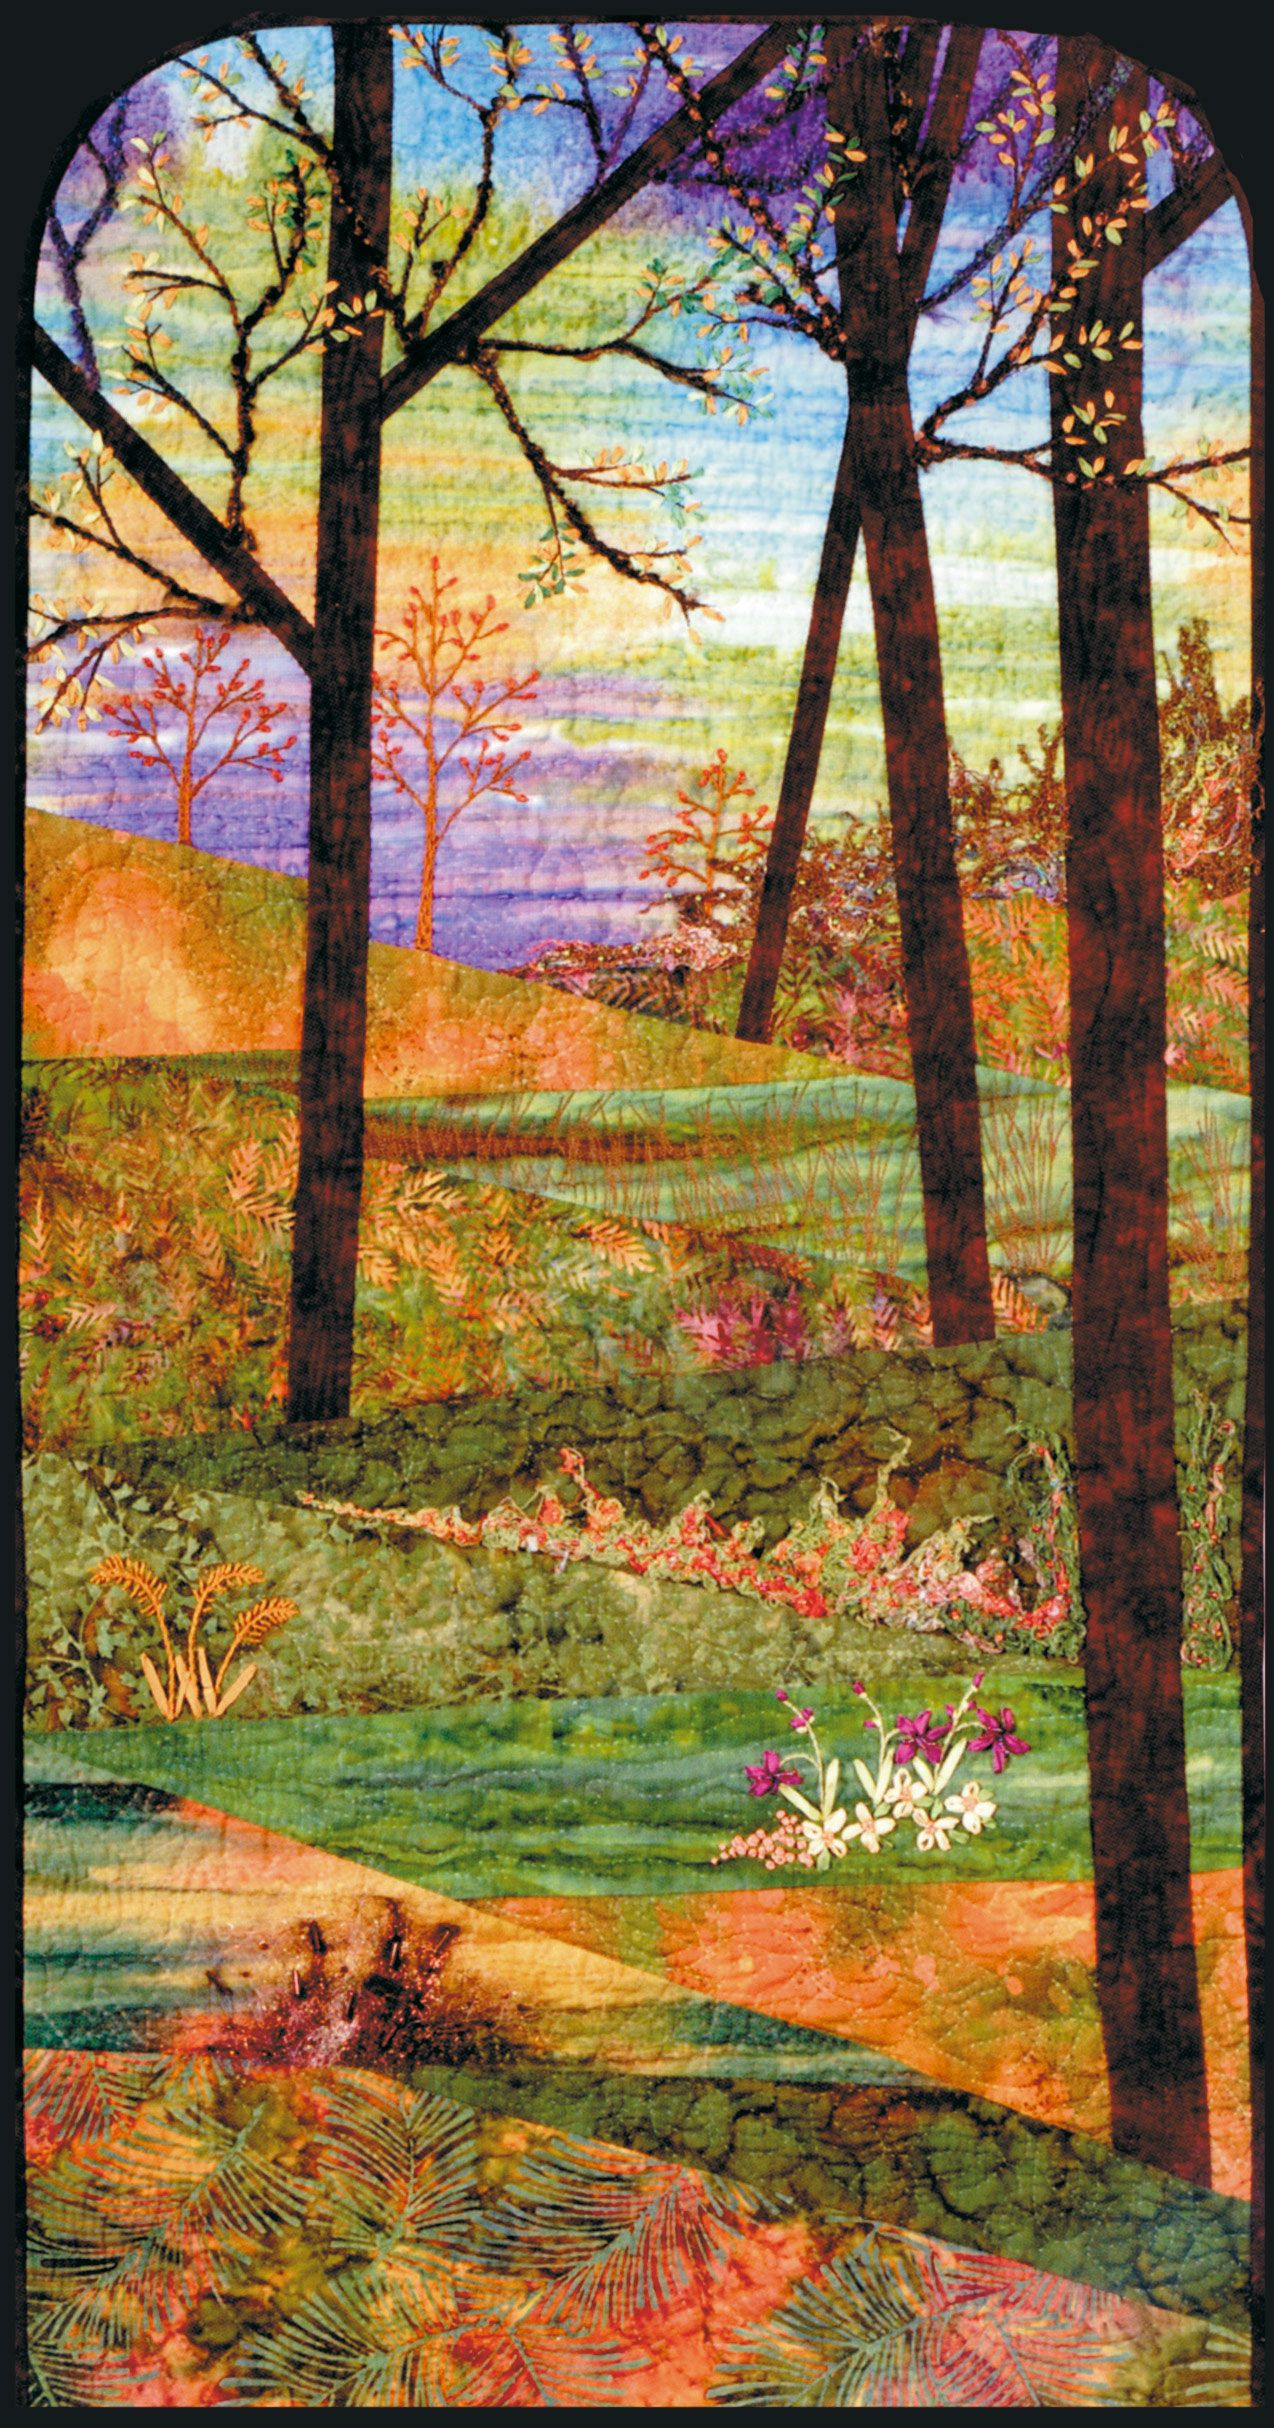 Landscape Quilt Sample Class Taught By Deborah At Appletree Quilting Sometimes Less Is More Landscape Art Quilts Landscape Quilts Landscape Quilt